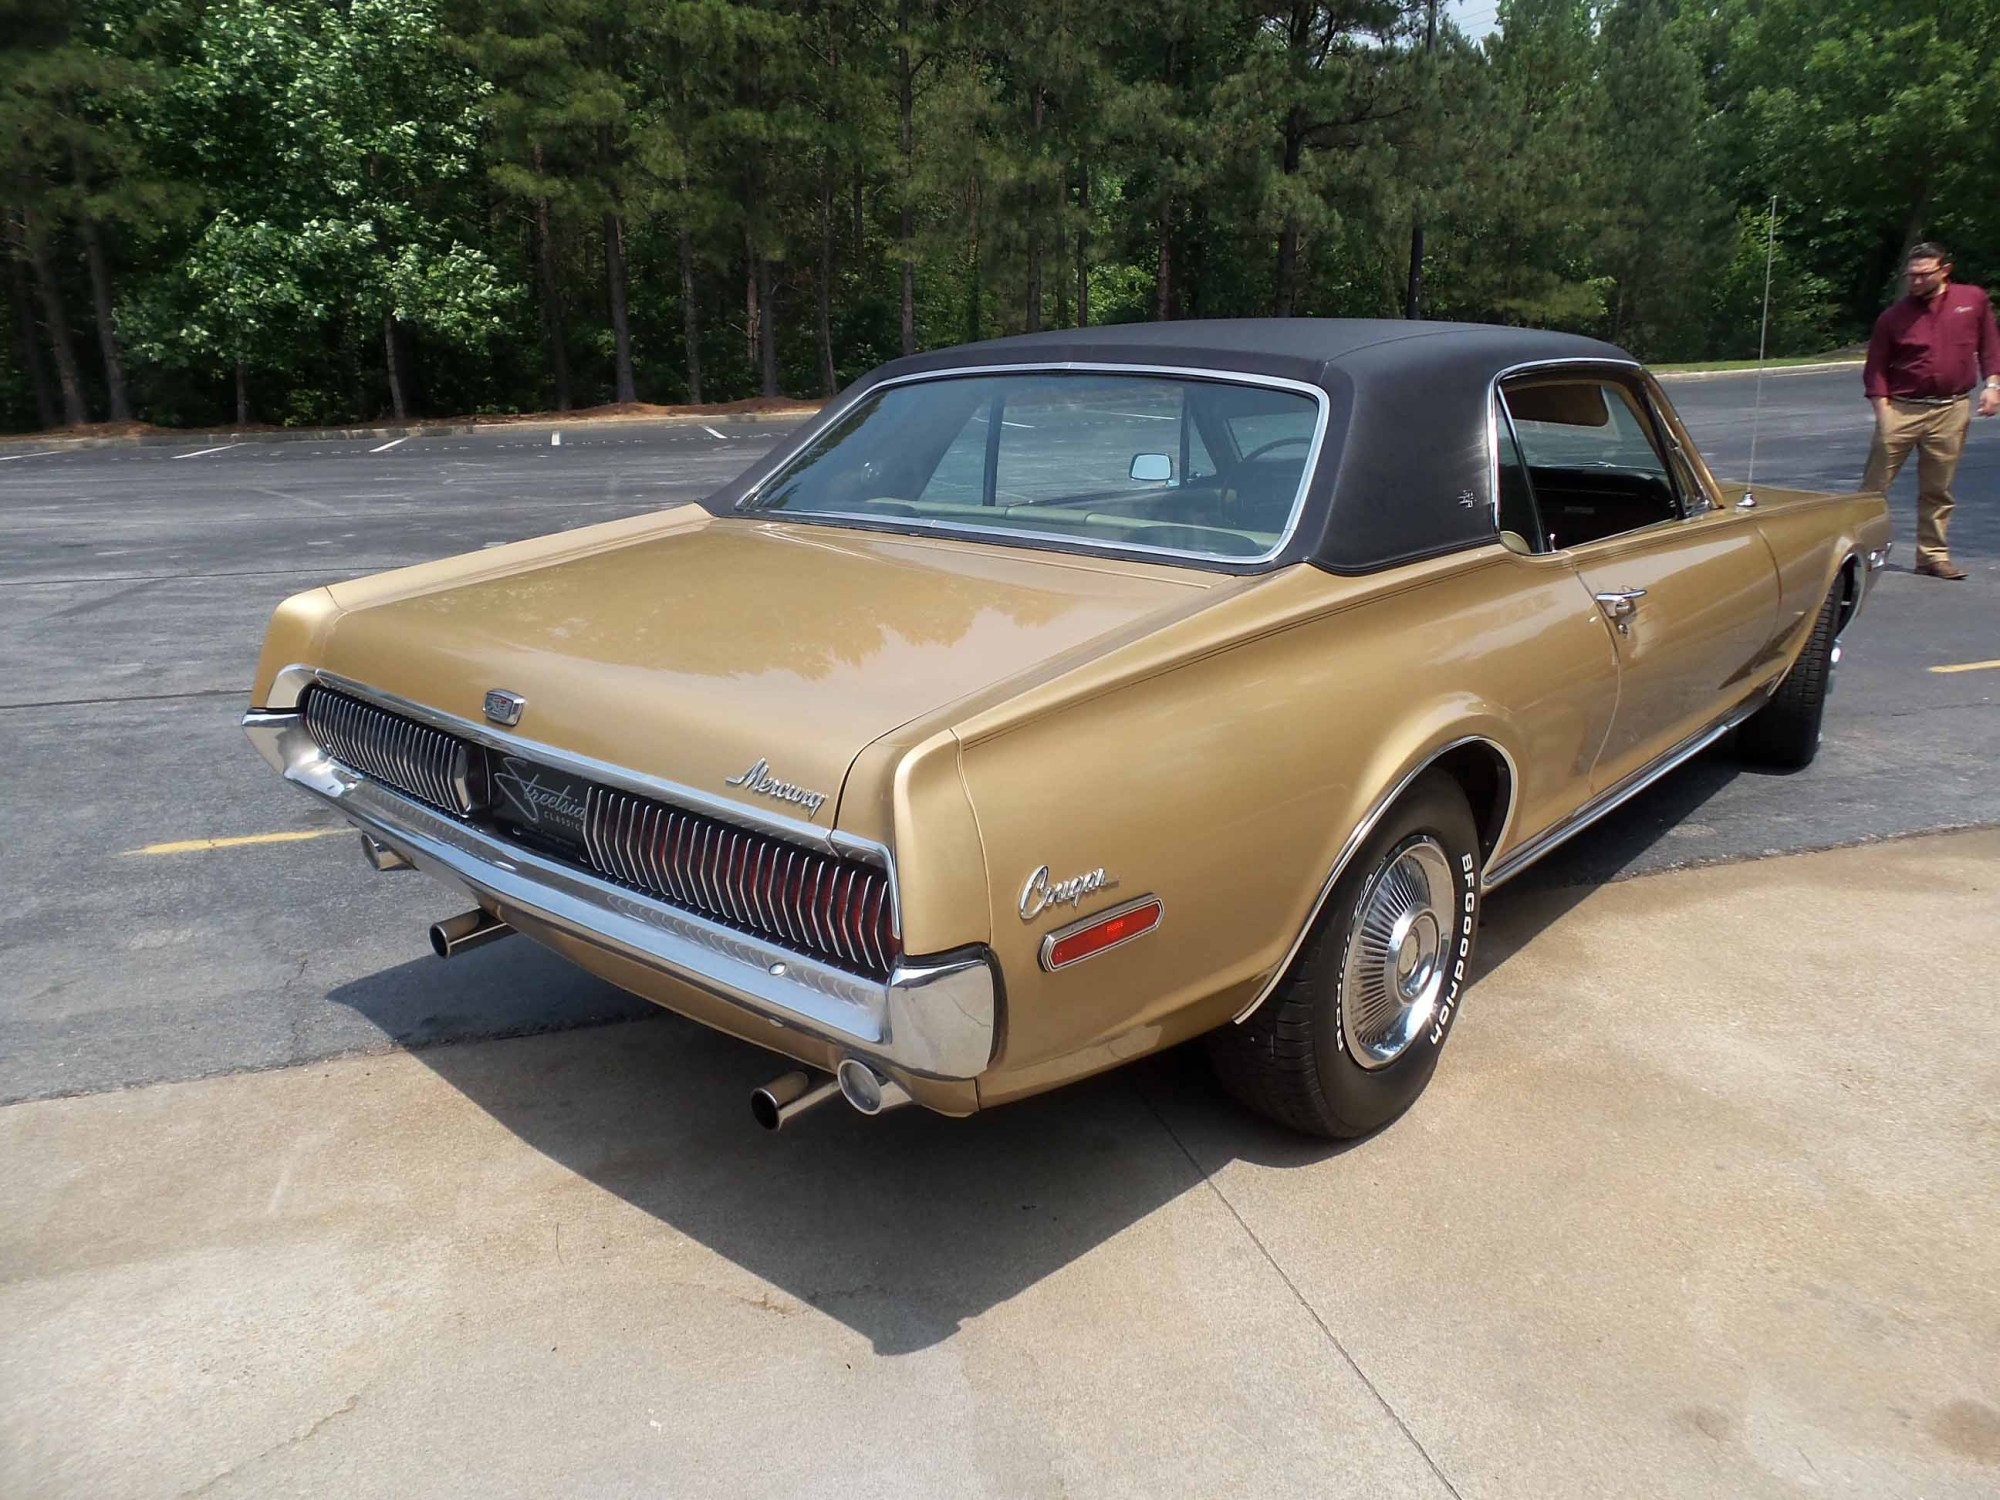 hight resolution of cc capsule 1967 mercury cougar gt wild beautiful diagram further 1967 mercury cougar gt besides 1967 mercury cougar gt